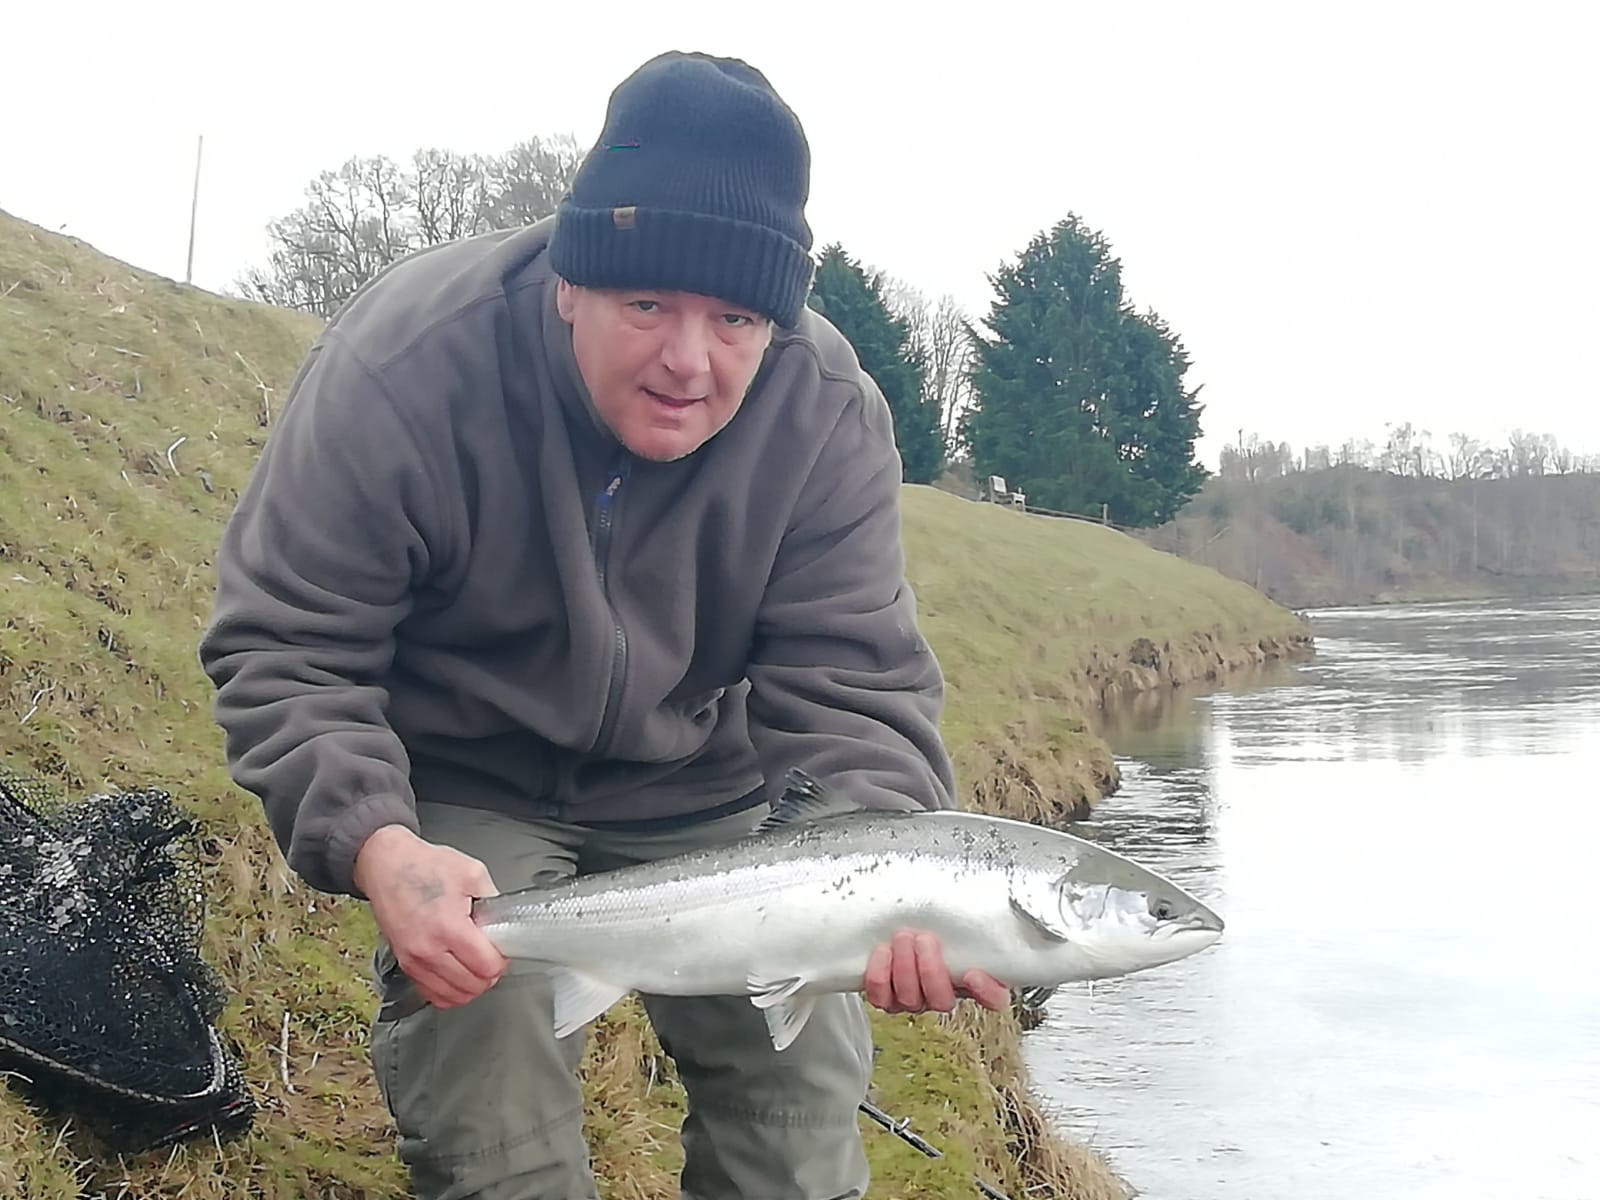 John Dewar with his 10lbs. fish on Tuesday 9th March 2021